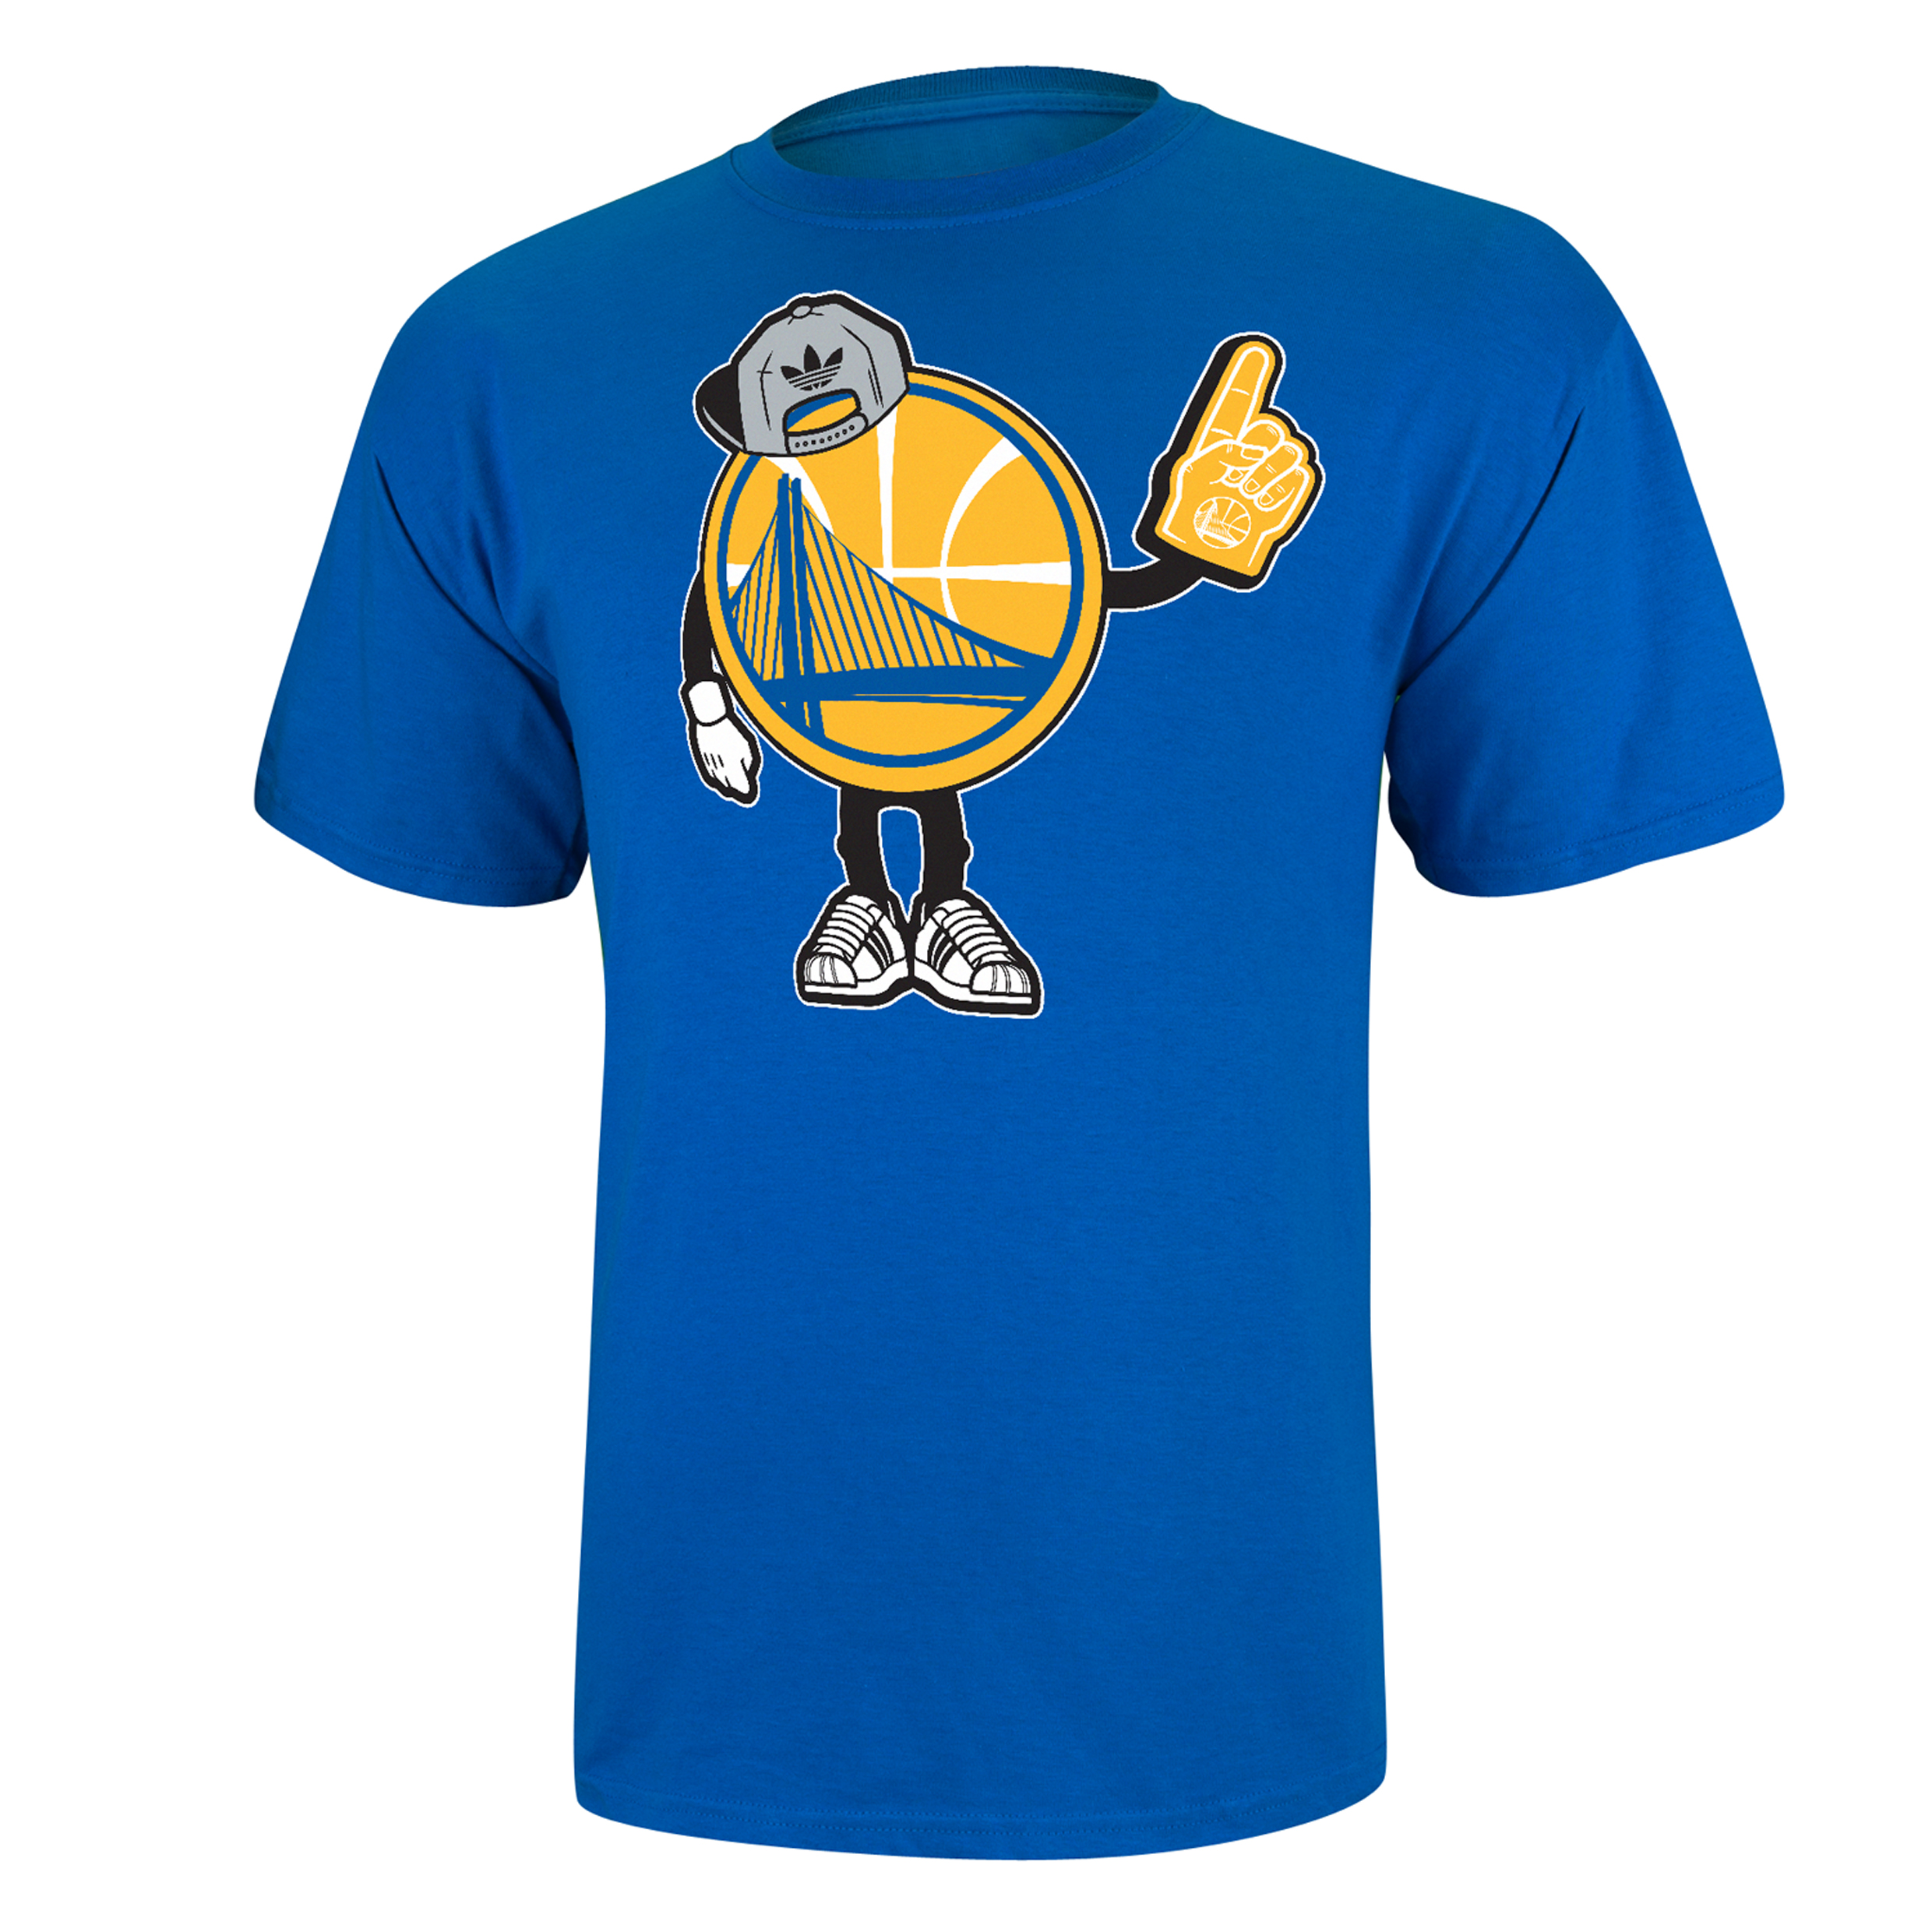 Golden State Warriors adidas originals Little Dude T-Shirt